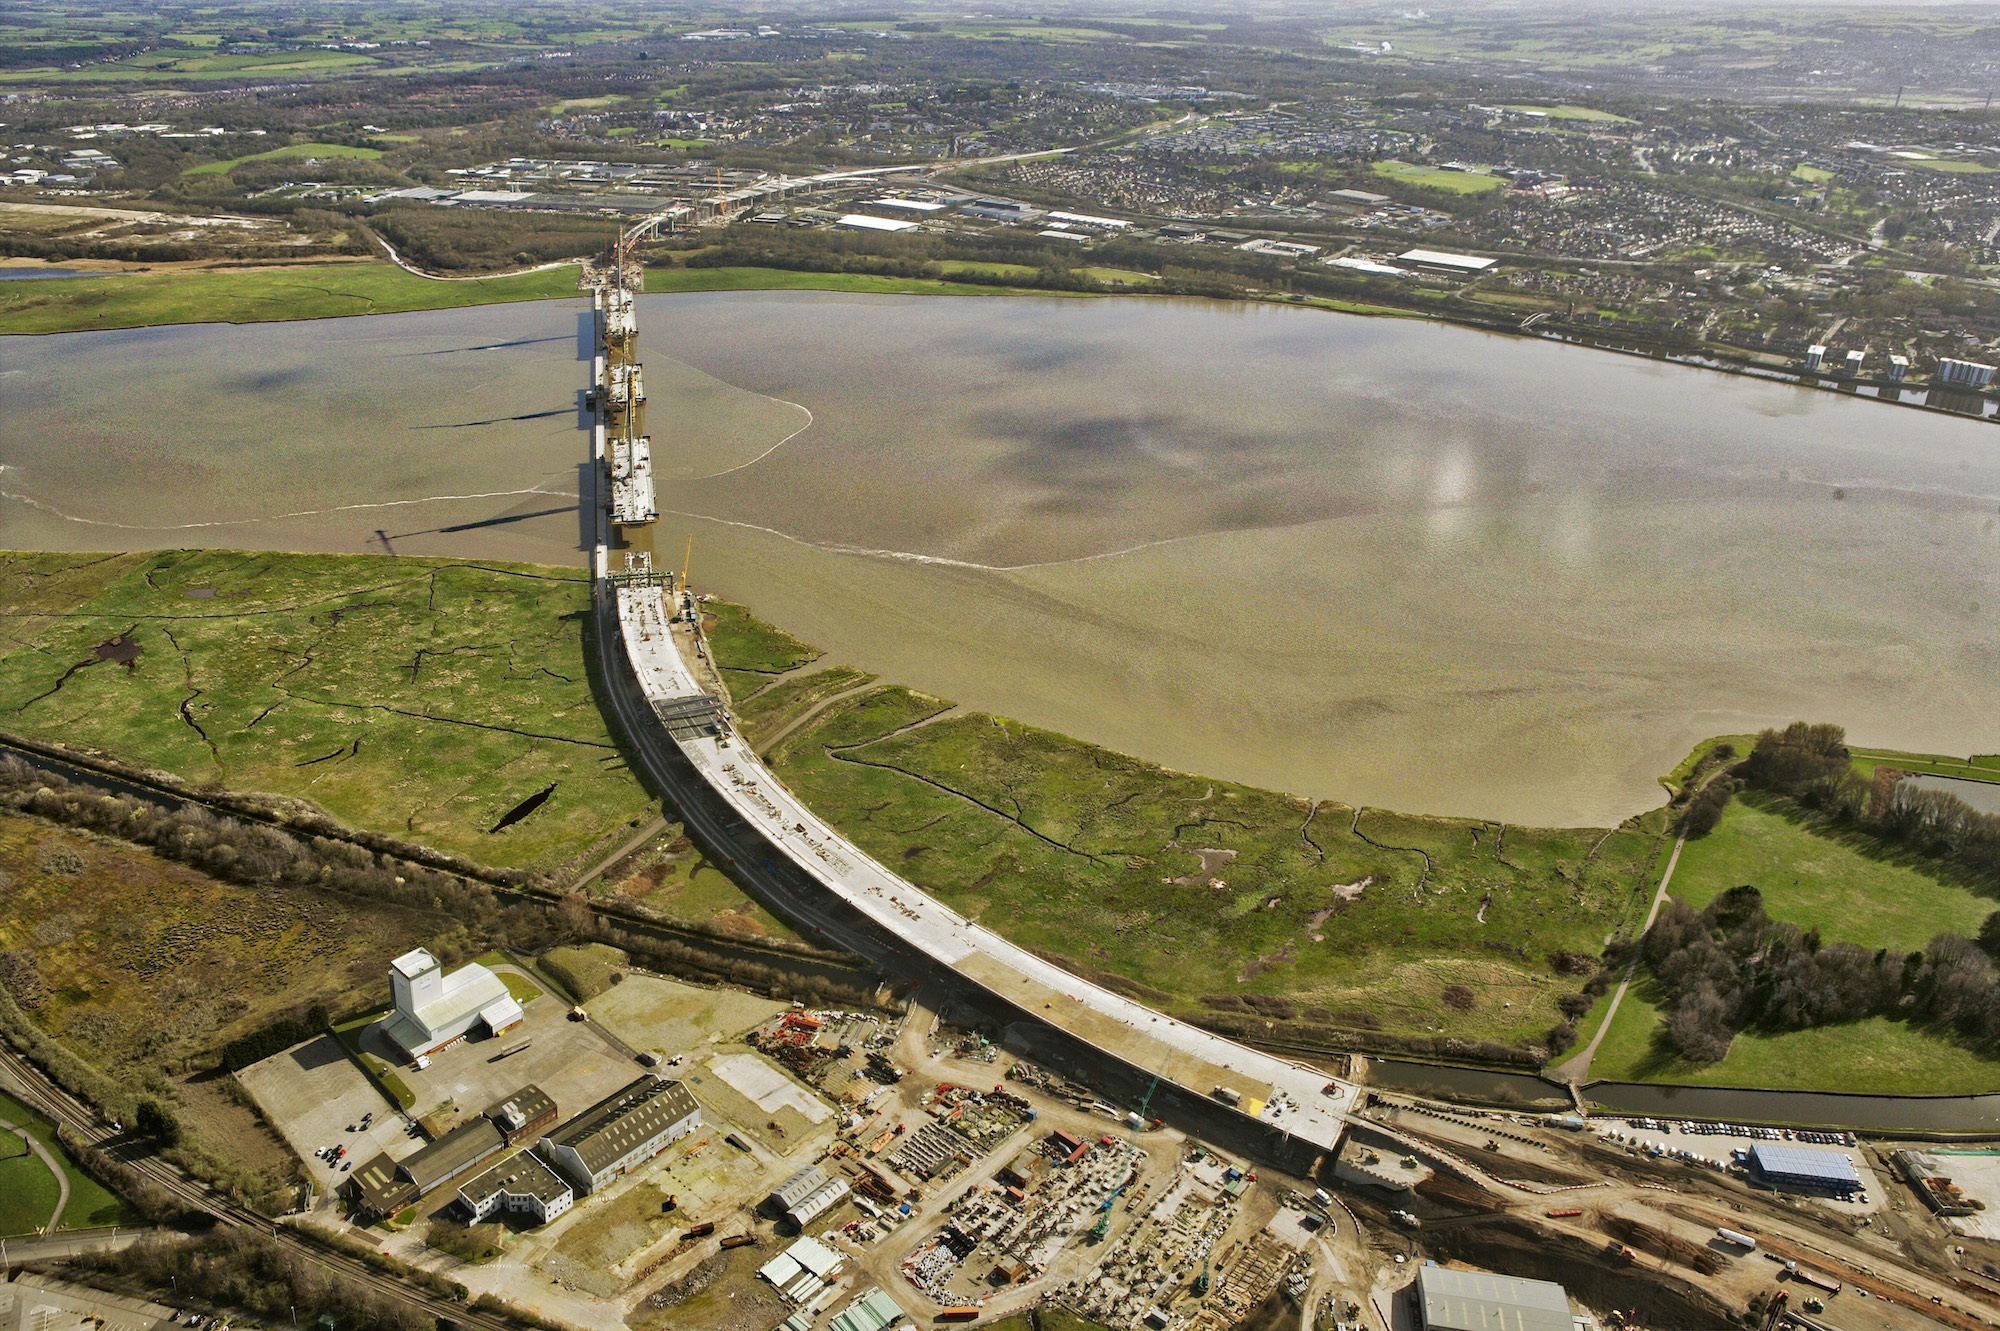 The giant north approach viaduct across the Widnes saltmarsh is now complete